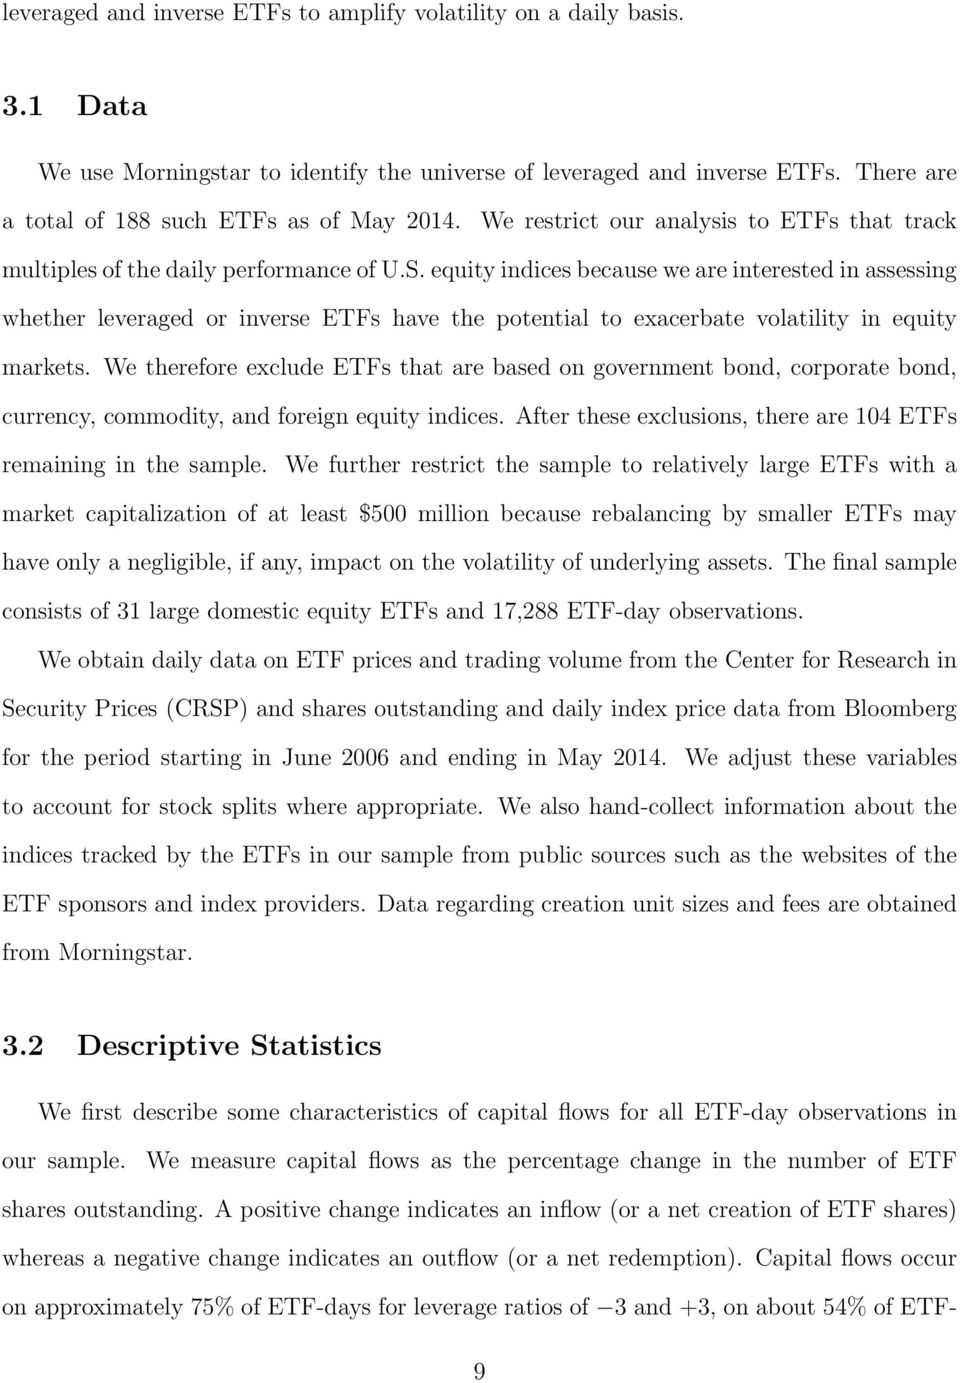 equity indices because we are interested in assessing whether leveraged or inverse ETFs have the potential to exacerbate volatility in equity markets.